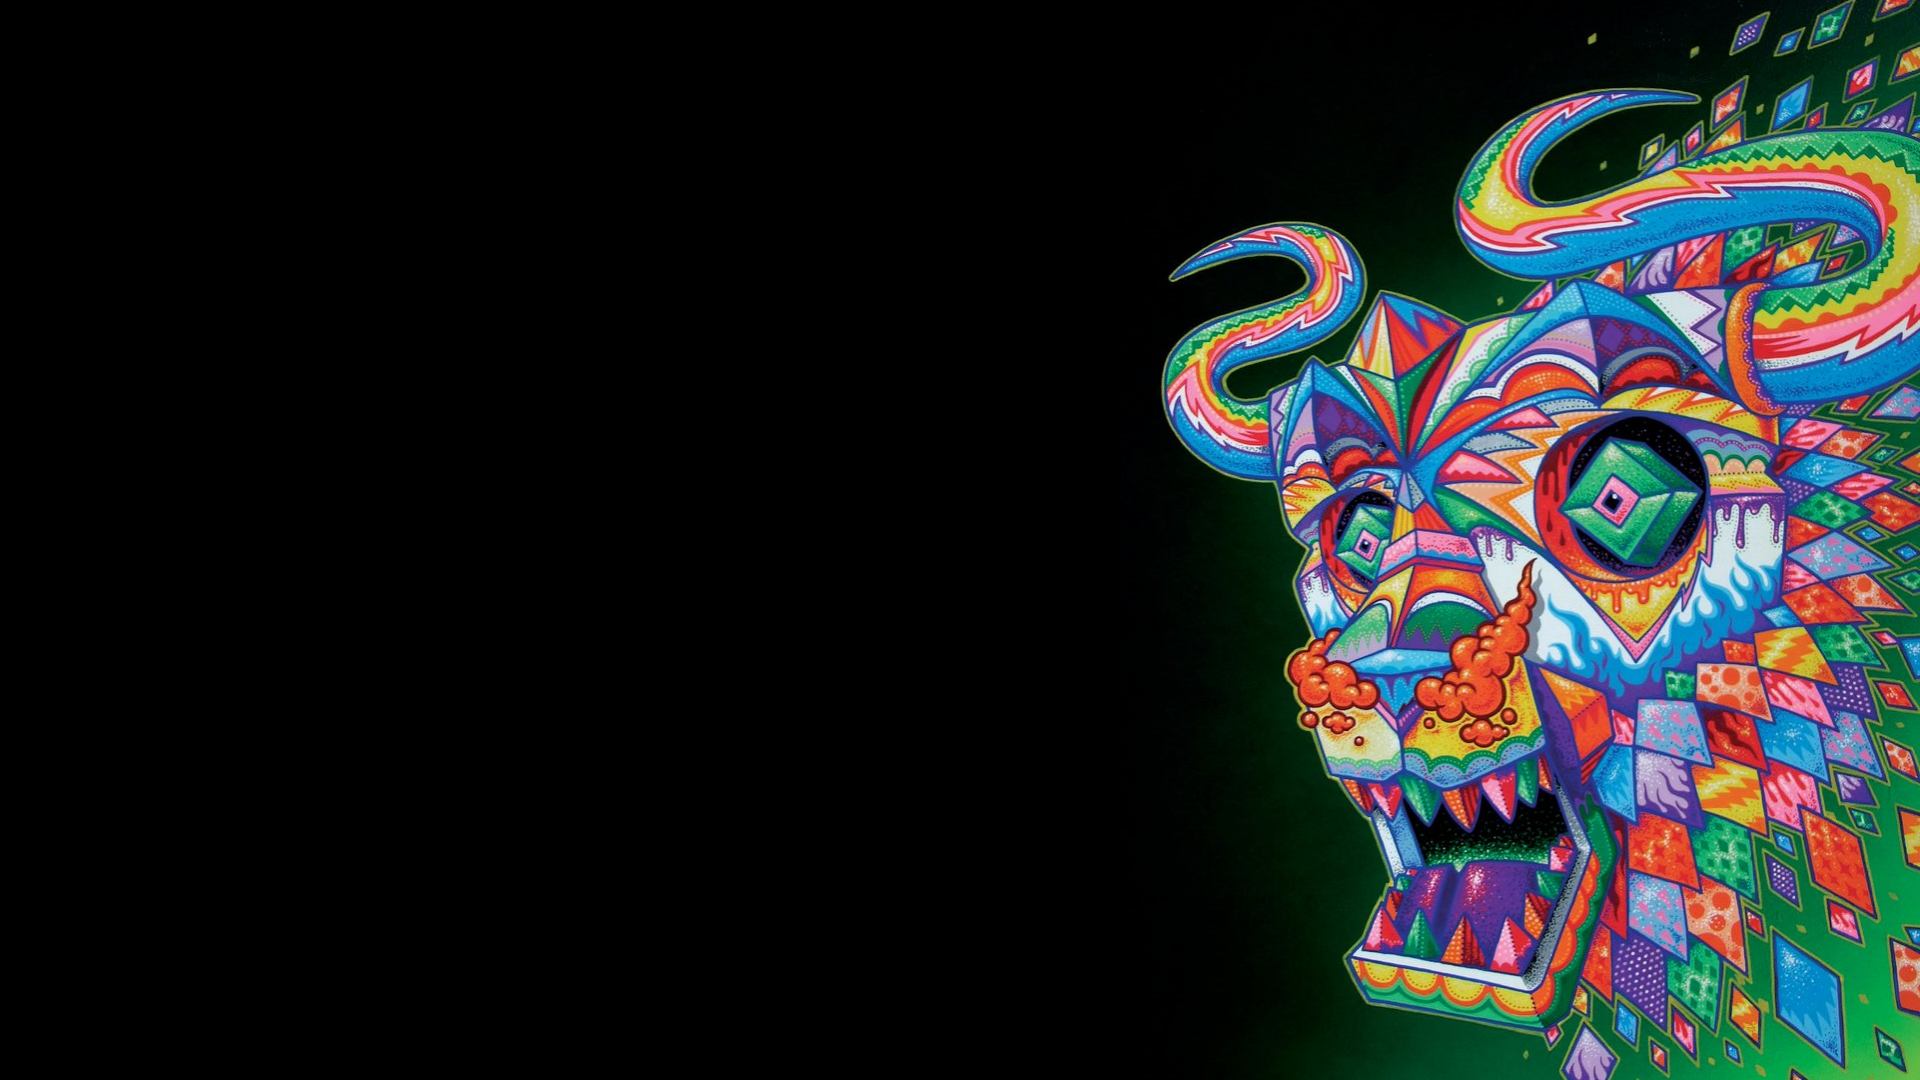 Acid Trip HD Wallpaper 1920x1080